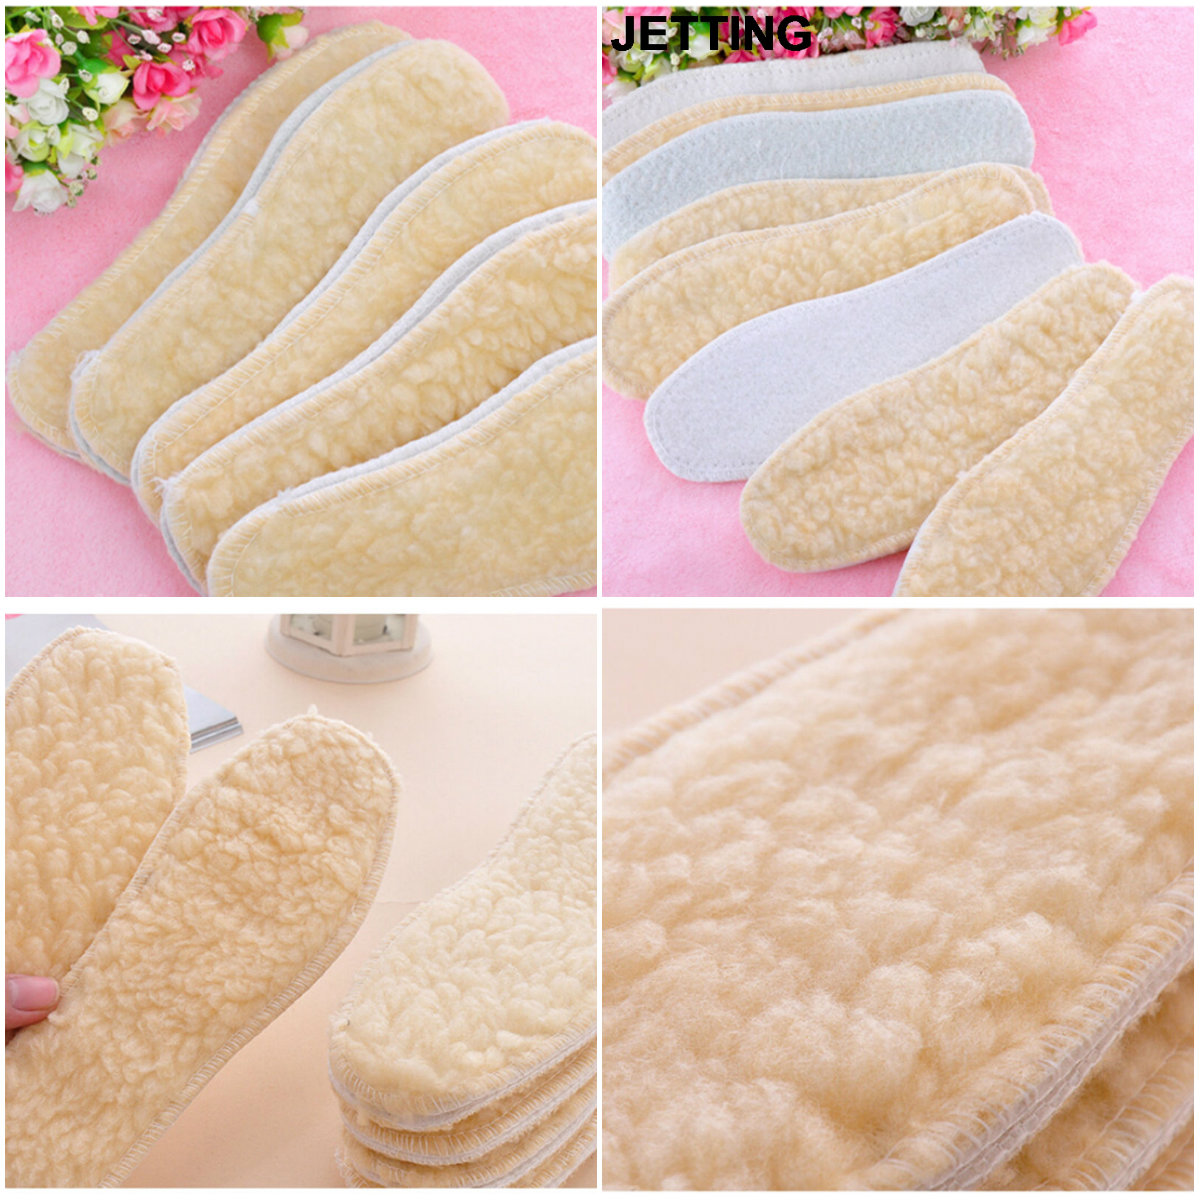 Hot 1Pair New Arrival 25cm Winter Warm Thicken Fleece Insoles Shoes Insoles For Women MenHot 1Pair New Arrival 25cm Winter Warm Thicken Fleece Insoles Shoes Insoles For Women Men